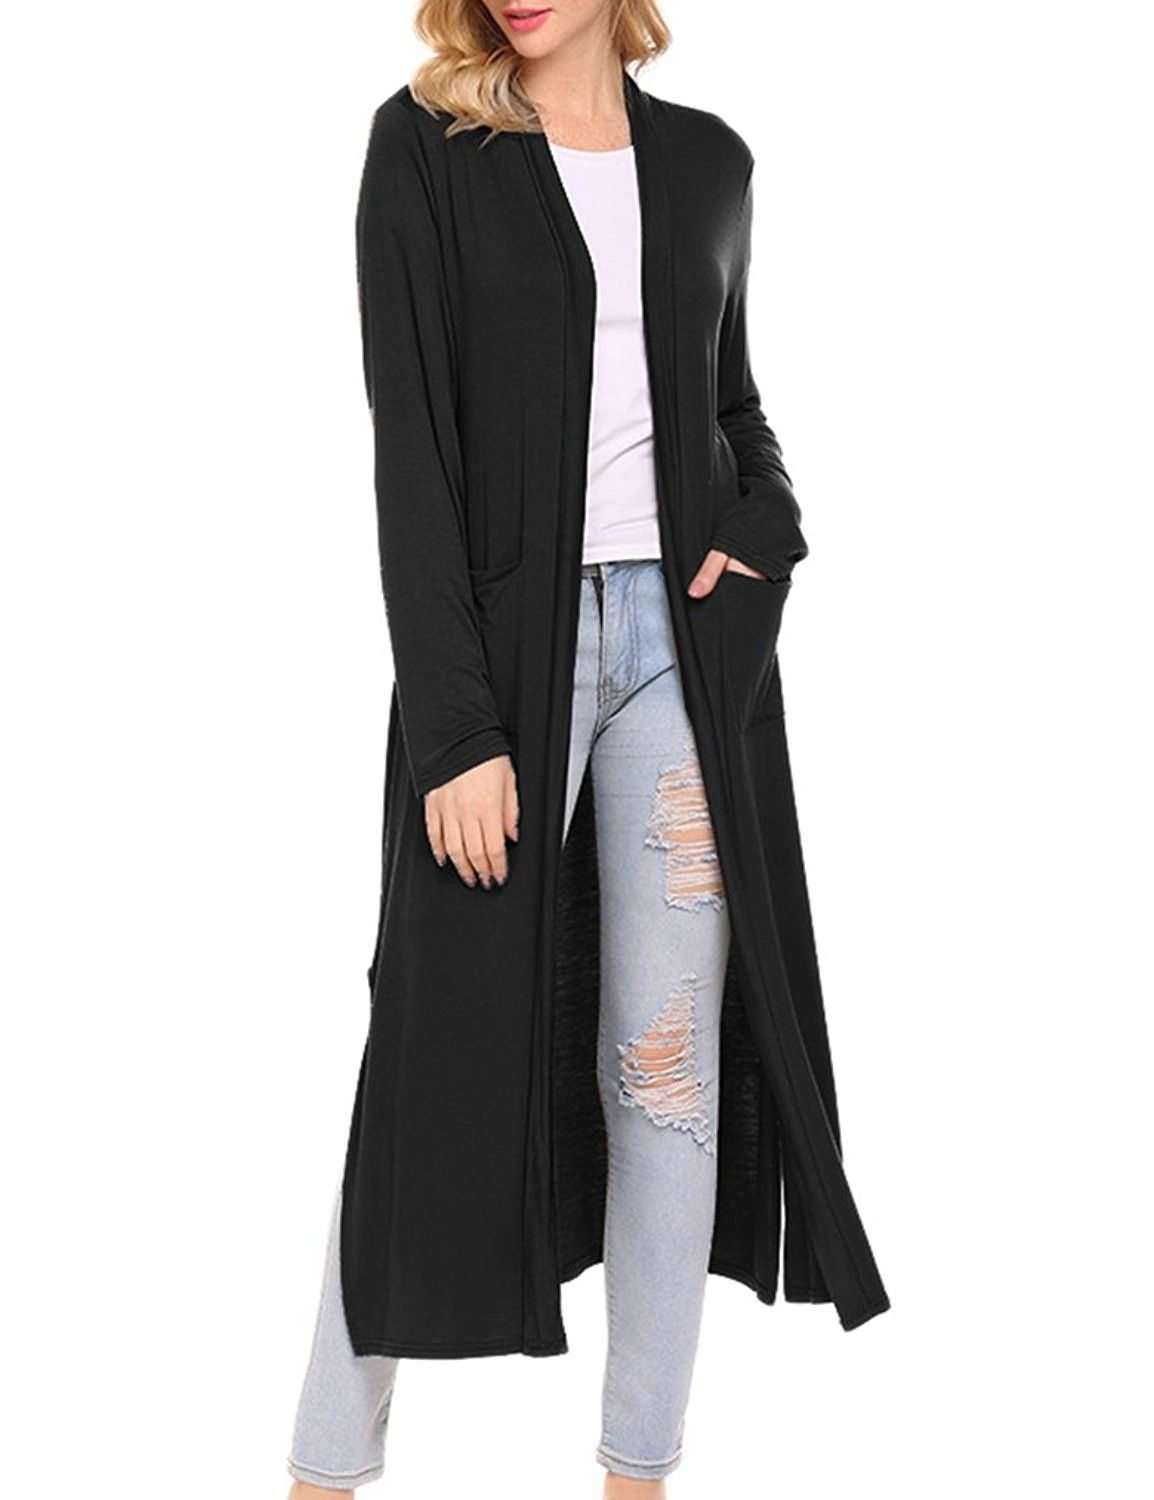 649688e2821214 Women's Soft Knit Longline Open Front Duster Cardigan With Side Pockets -  Black - C2189NGYSDL,Women's Clothing, Sweaters, Cardigans #women #fashion  ...